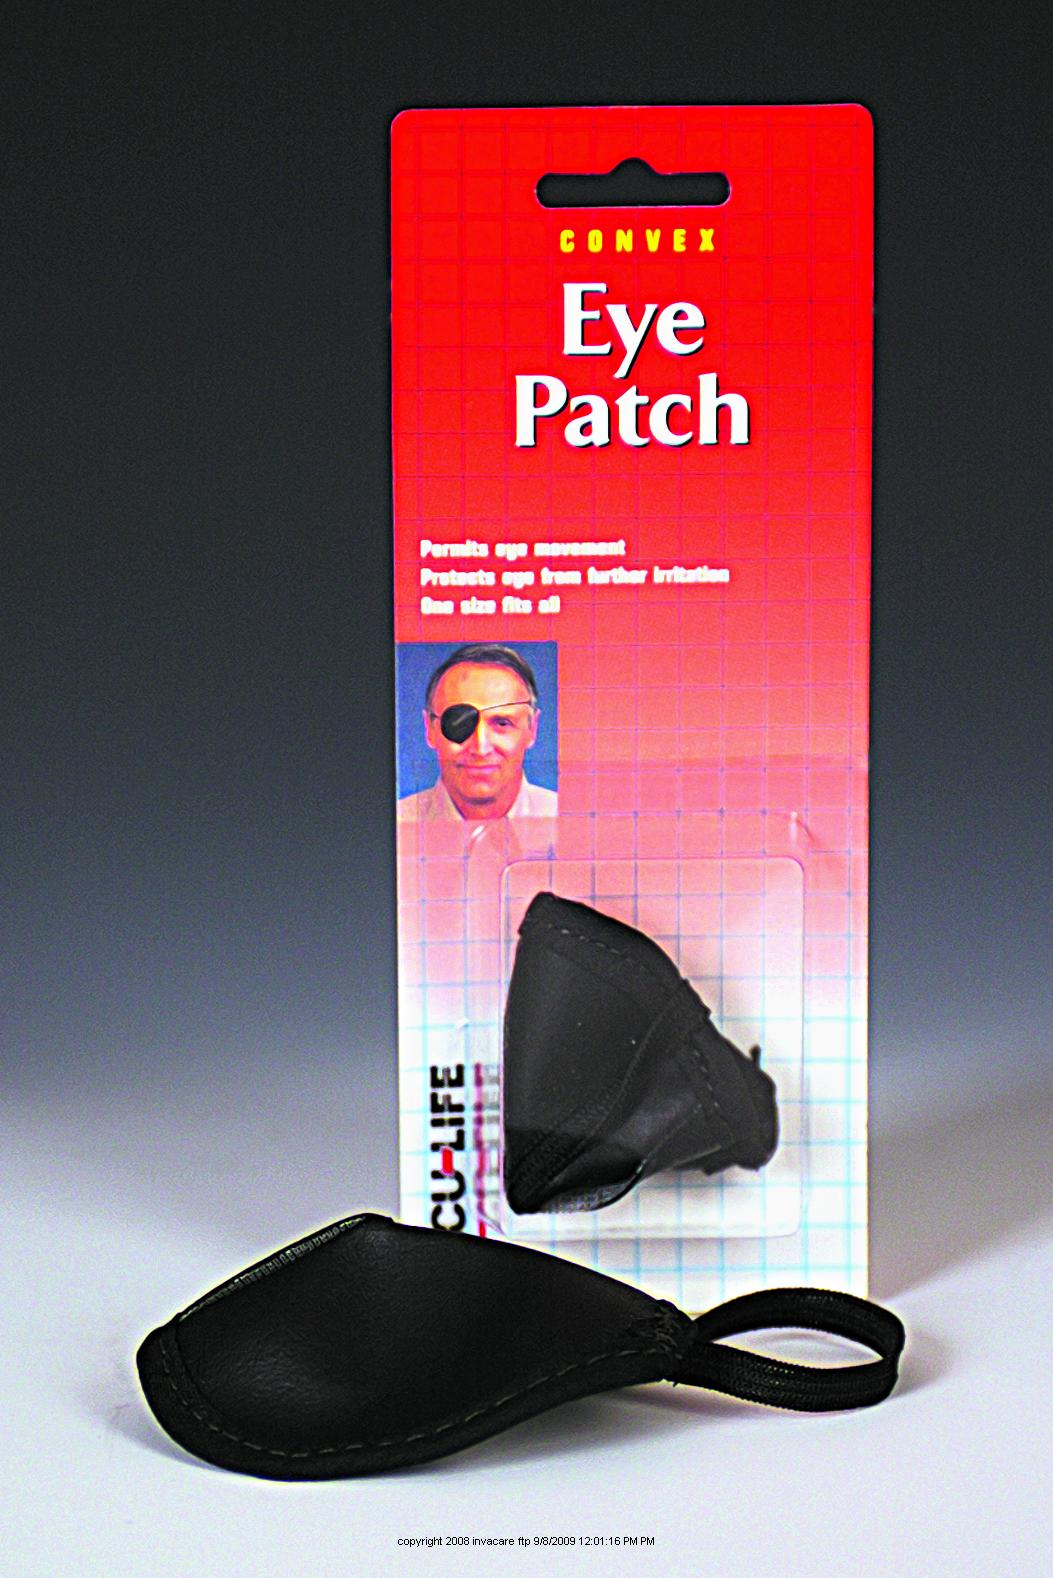 ACU-LIFE Vinyl Eye Patch, Aculife Vinyl Eye Patch, (1 EACH)